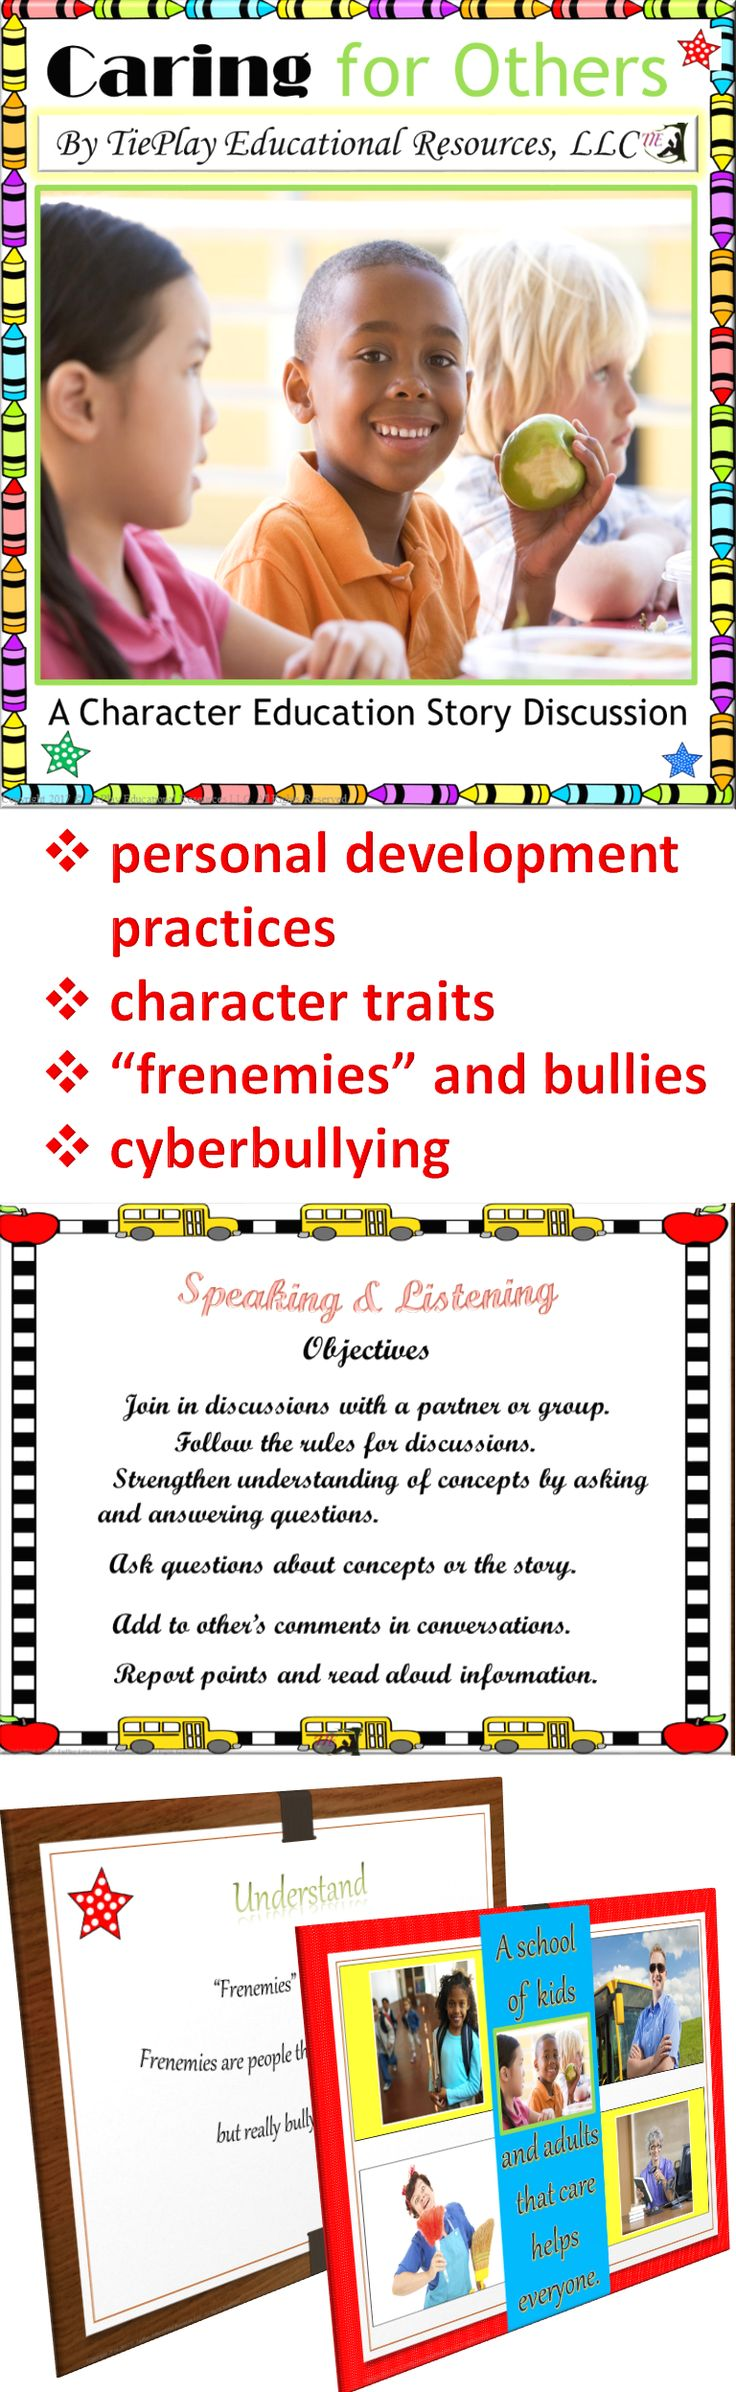 """Price $8.00 Caring for Others: A Character Education Story defines concepts such as character traits, """"frenemies"""", cyberbullying and bullying as well as personal development practices."""